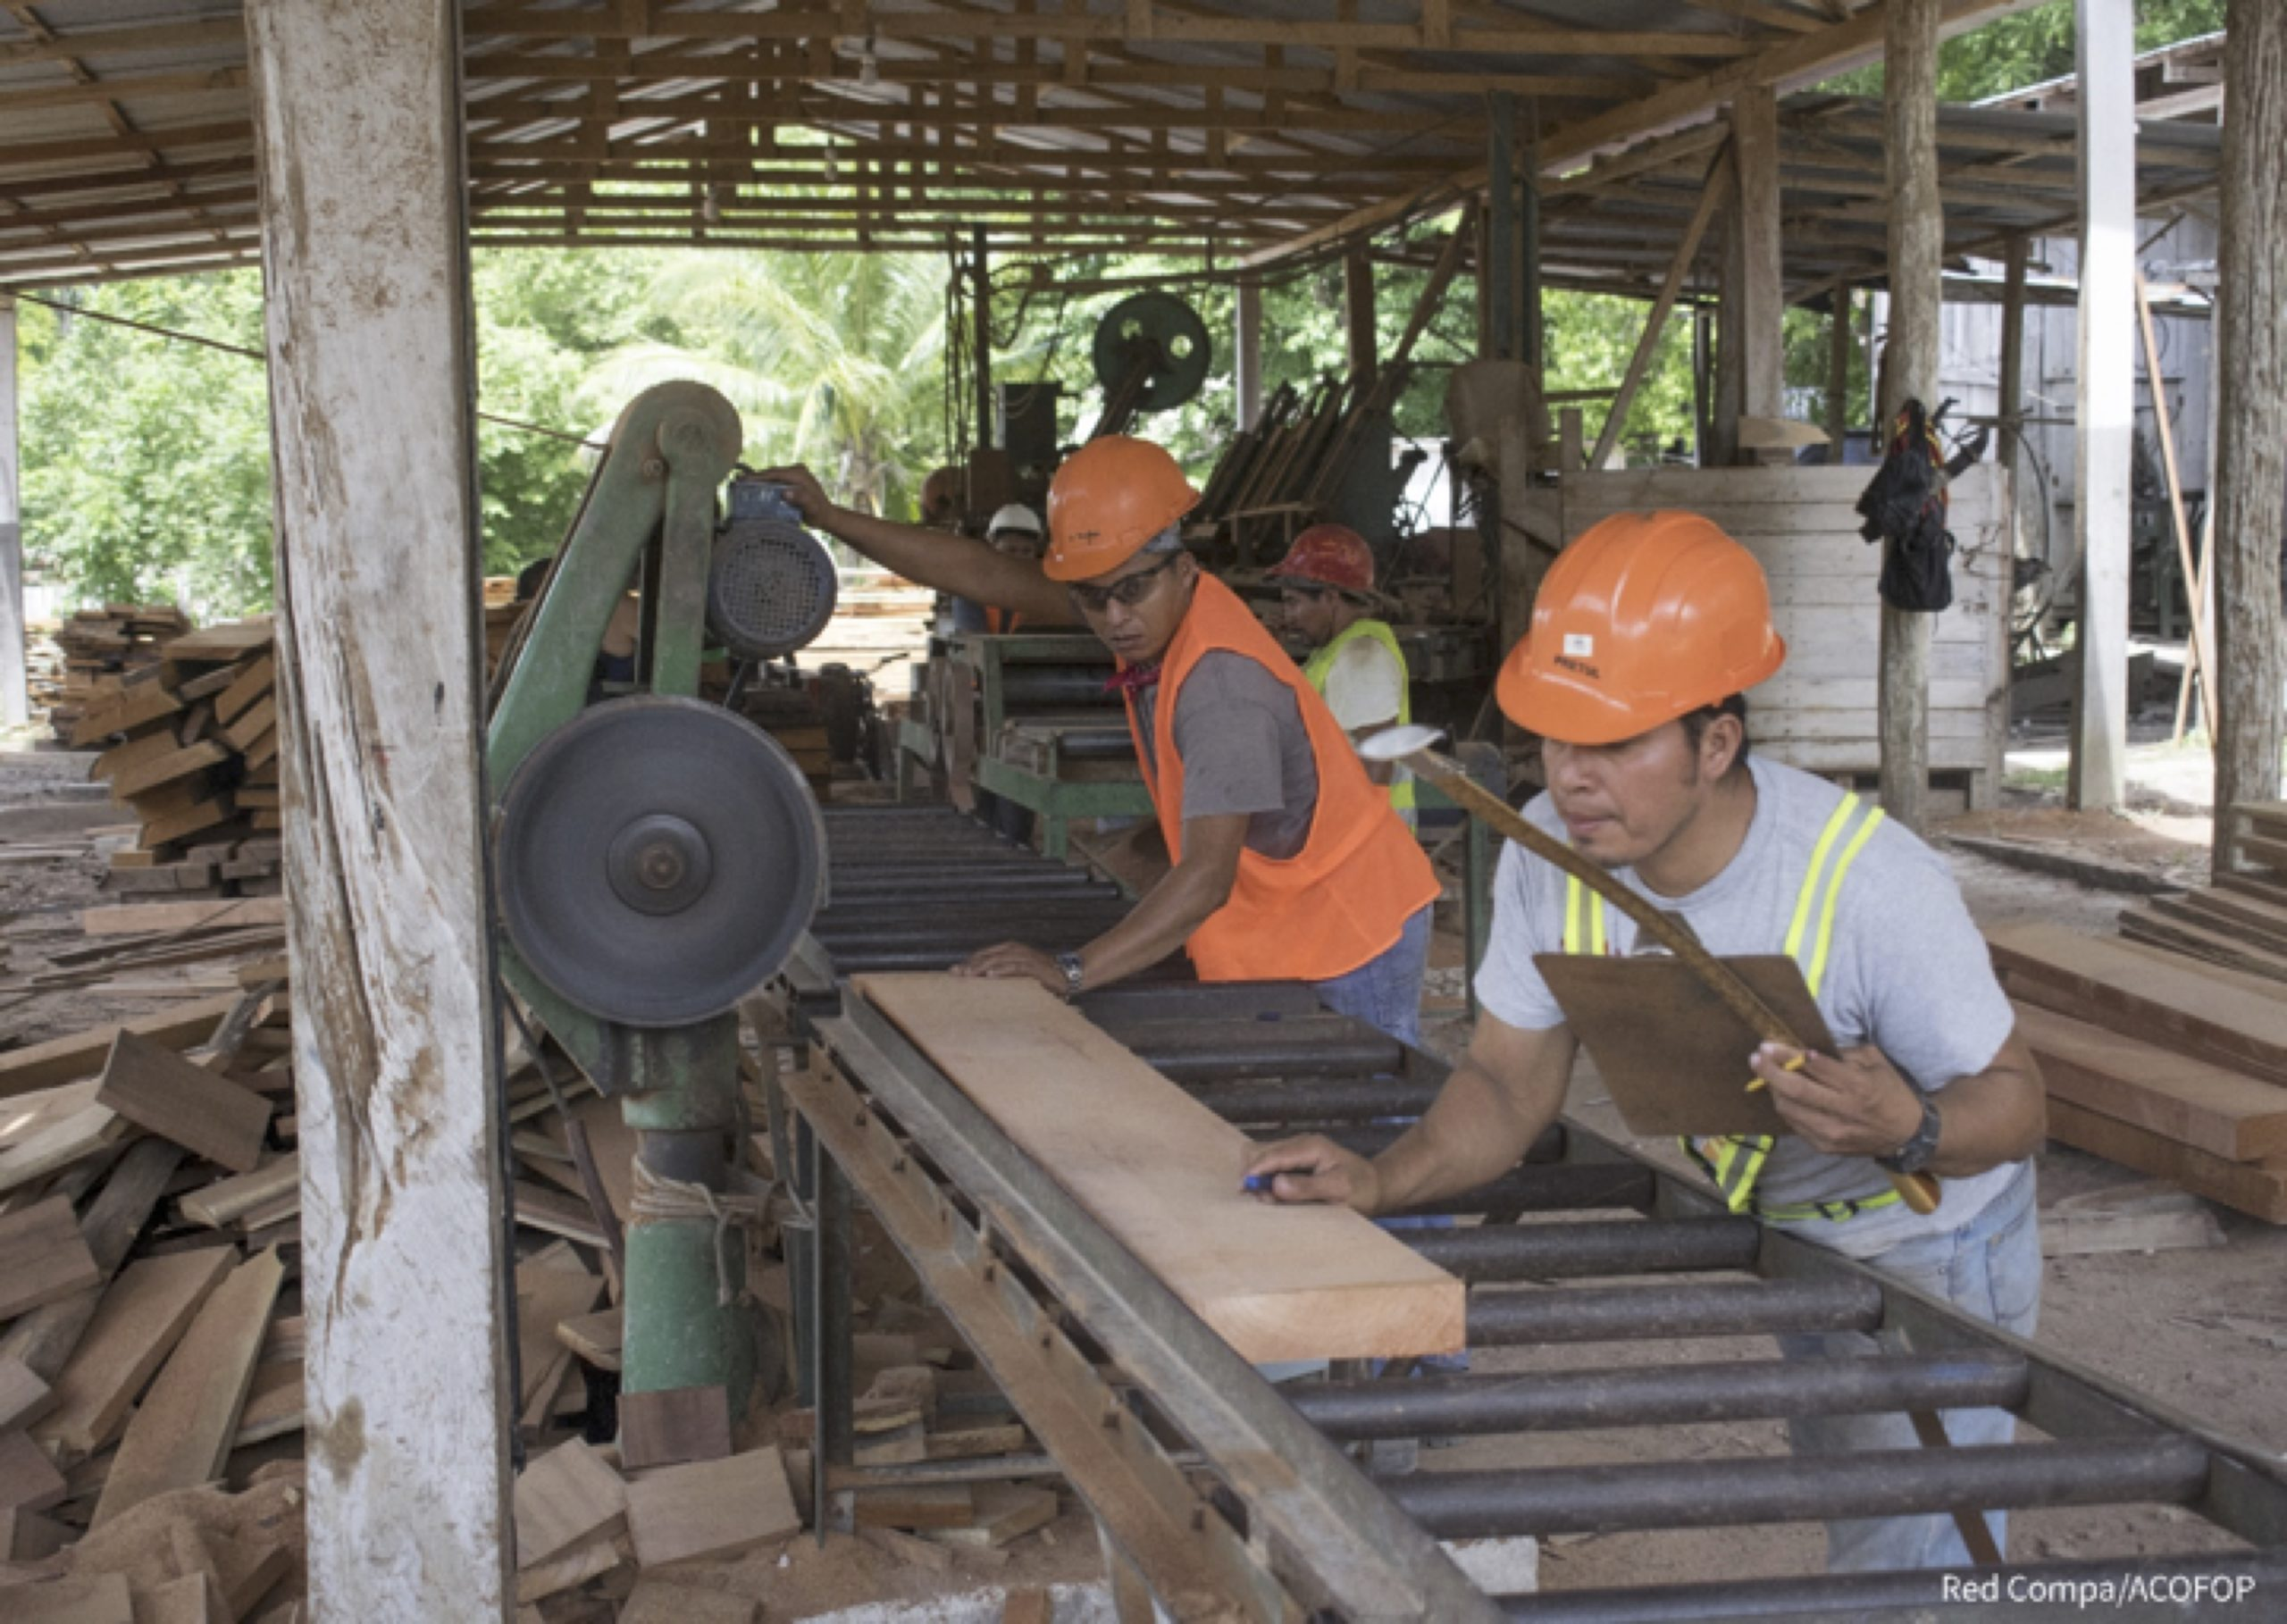 A photograph of two men at work